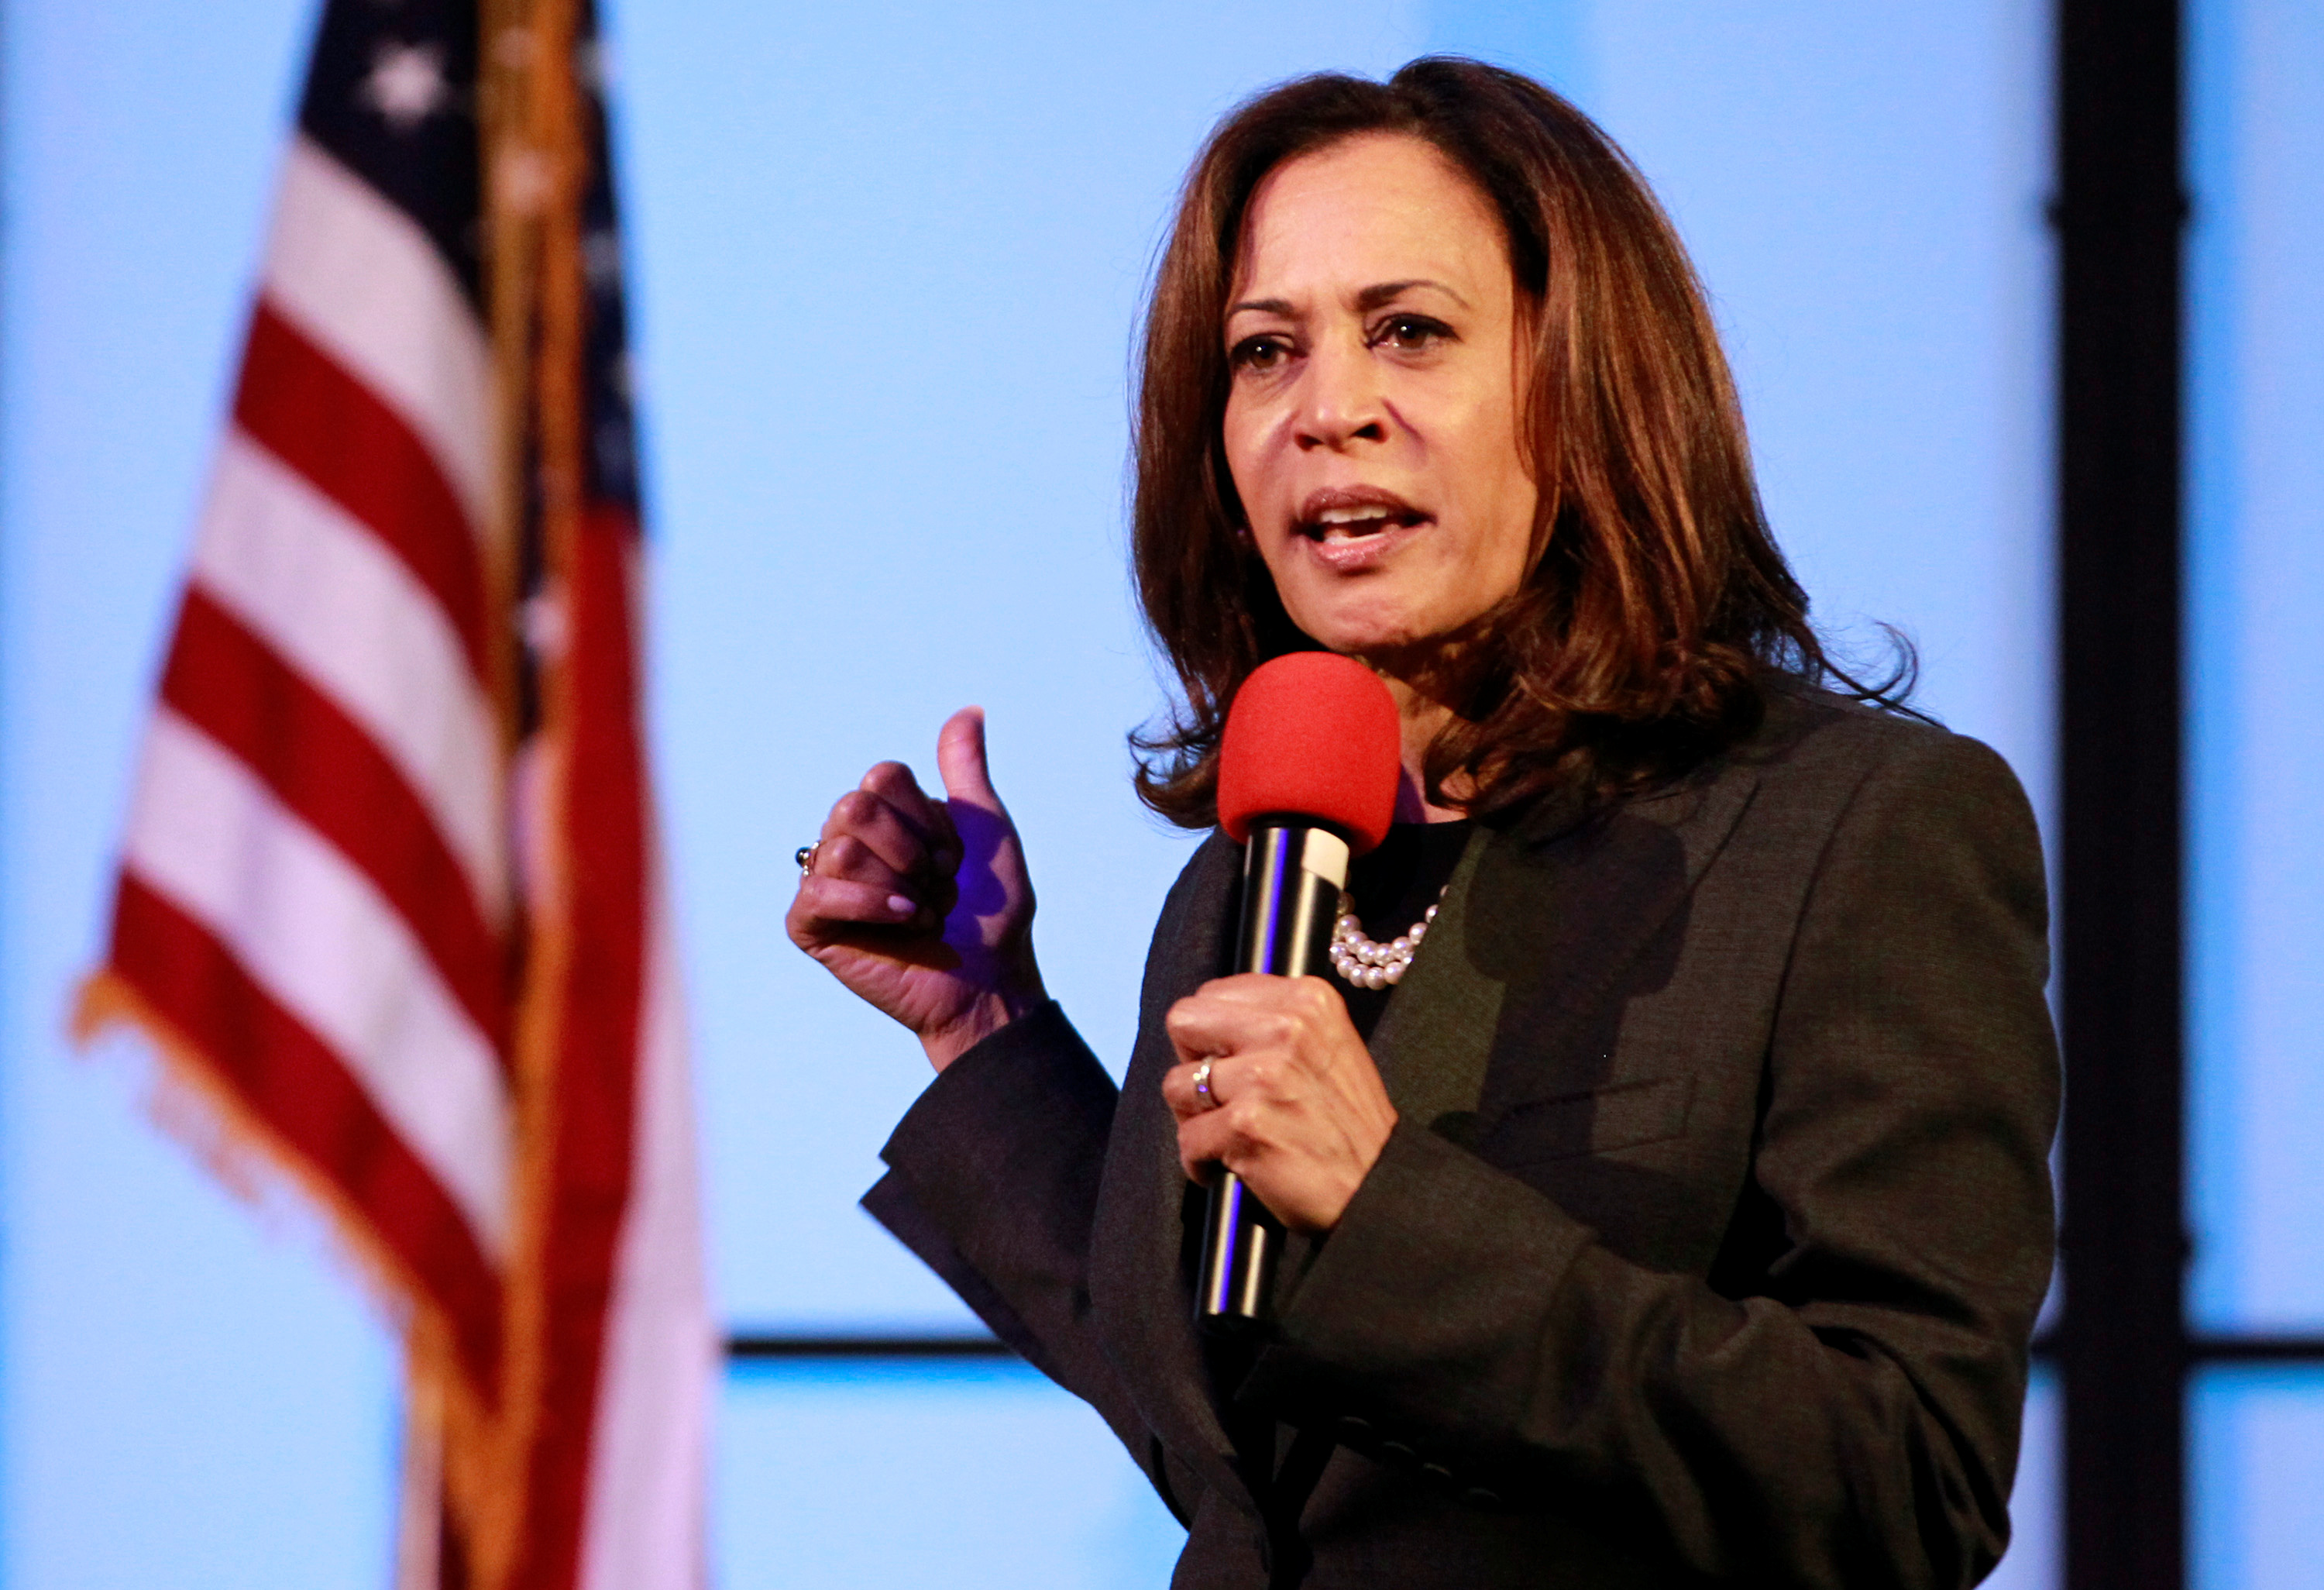 California Senator Kamala Harris Says Police Need to Be Better at Recognizing Racial Bias